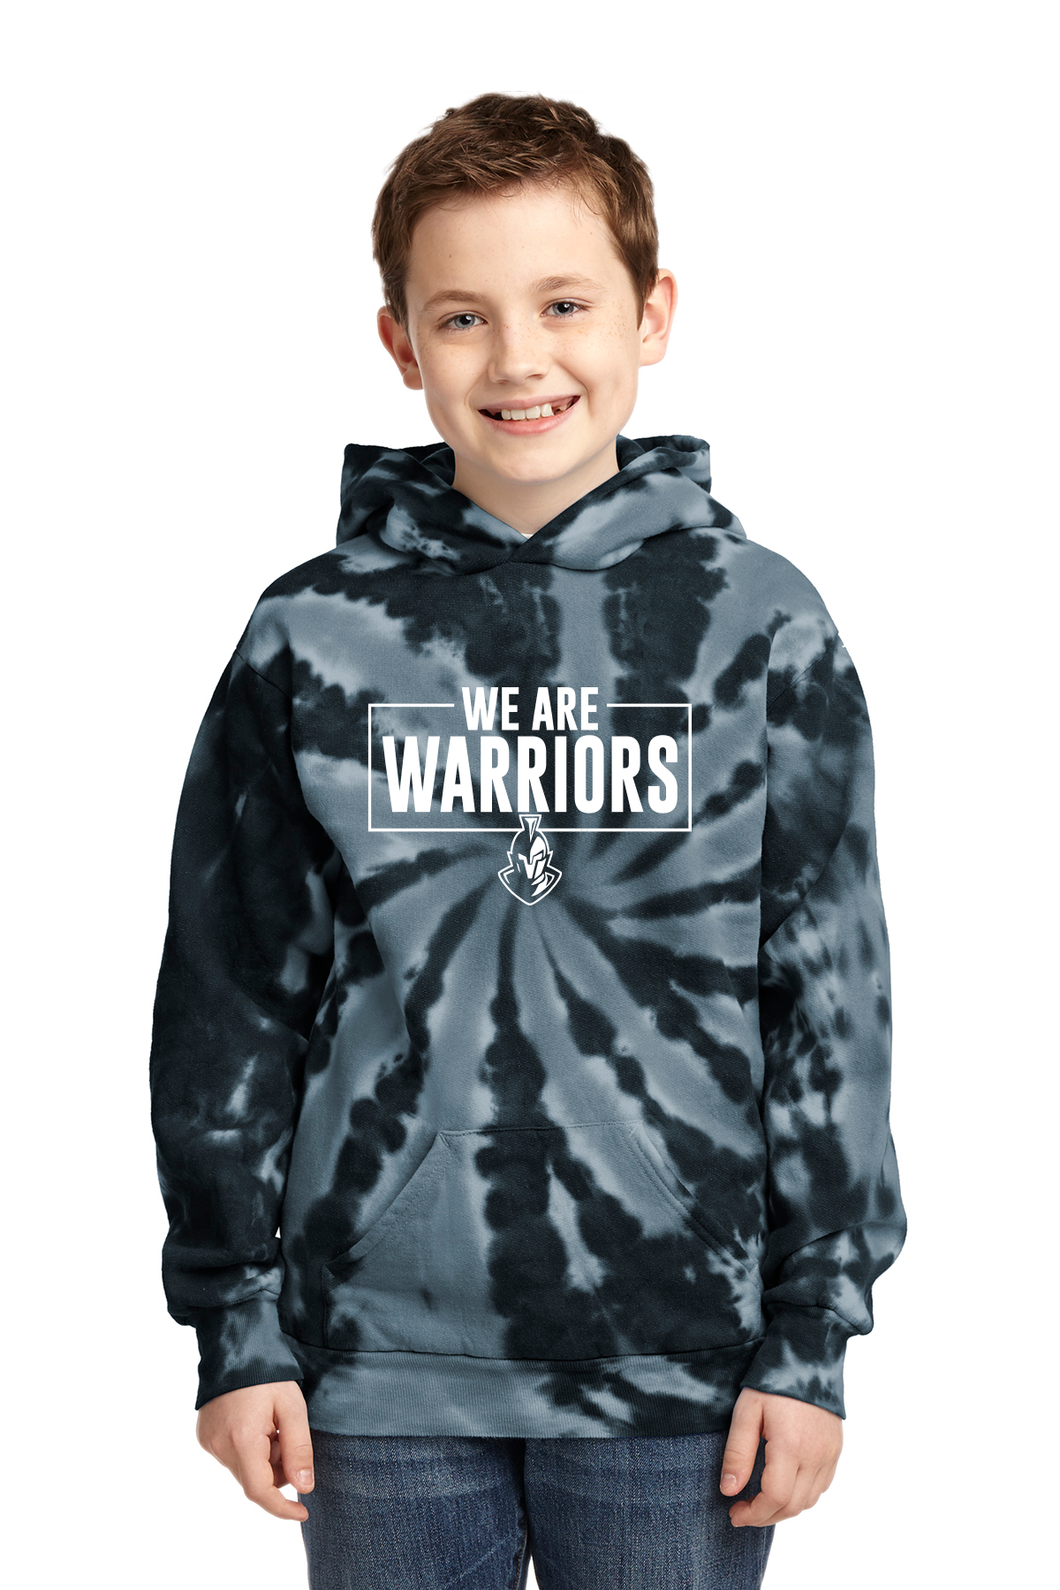 We are Warriors - Tie-Dye Pullover Hooded Sweatshirt (YOUTH)